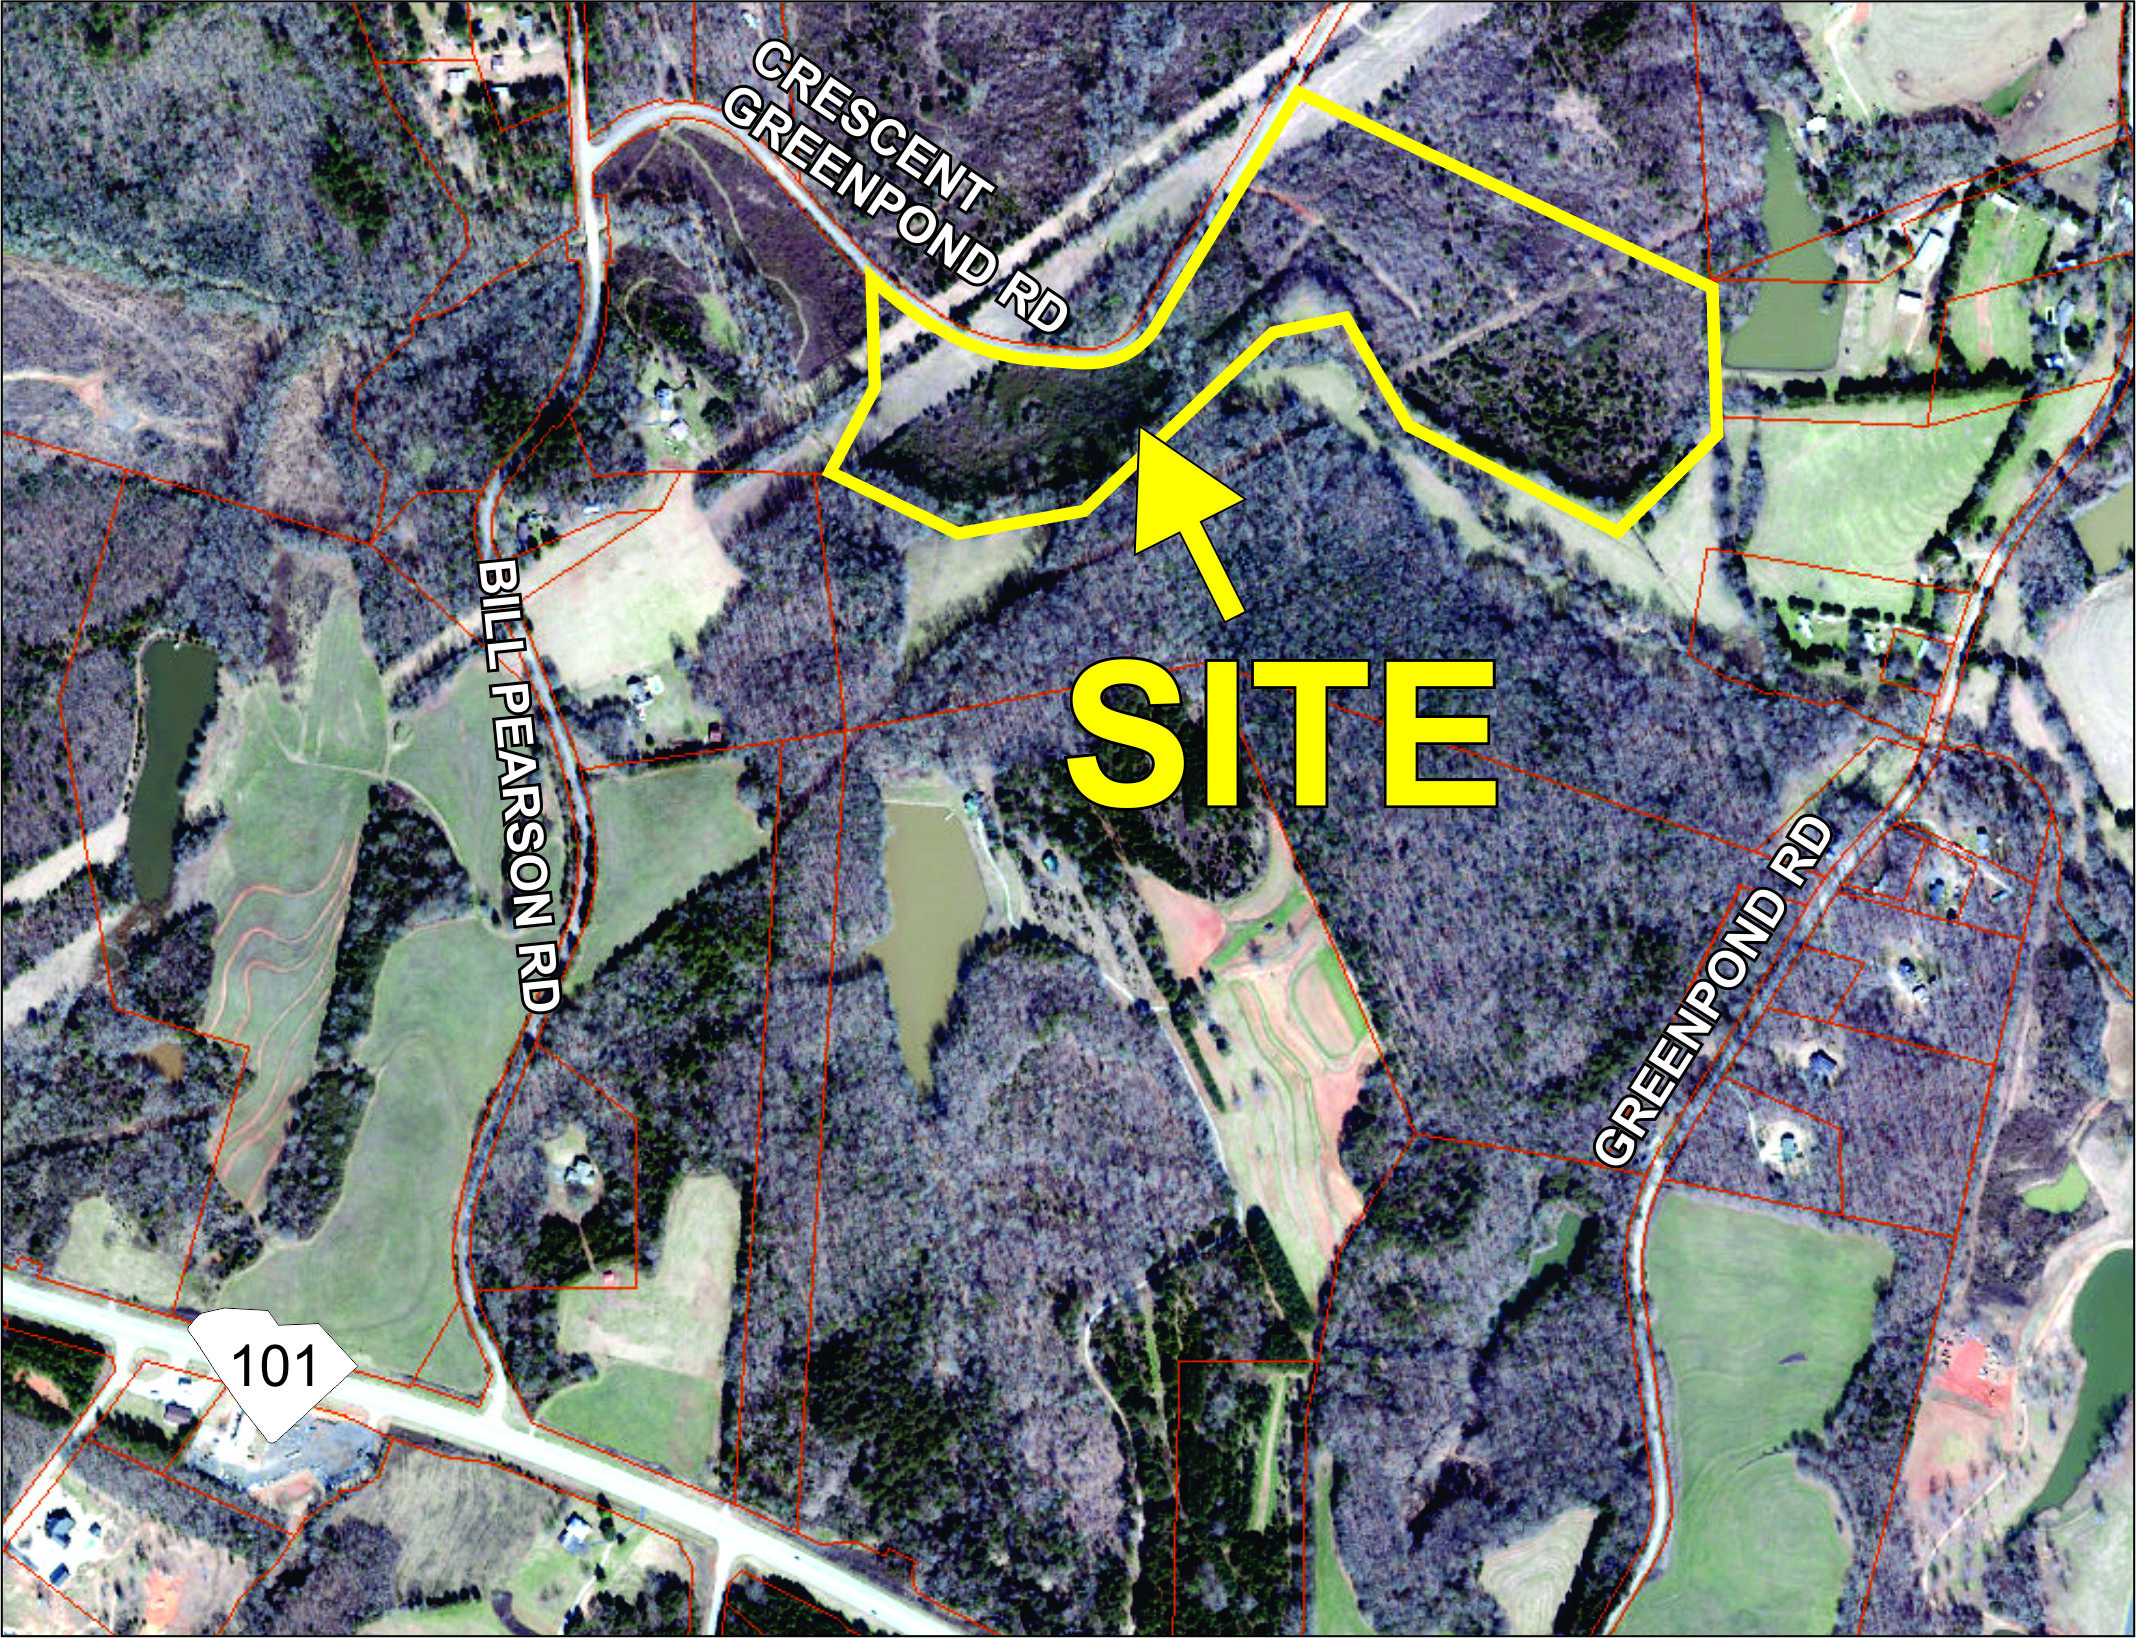 32 acre parcel in Woodruff sold